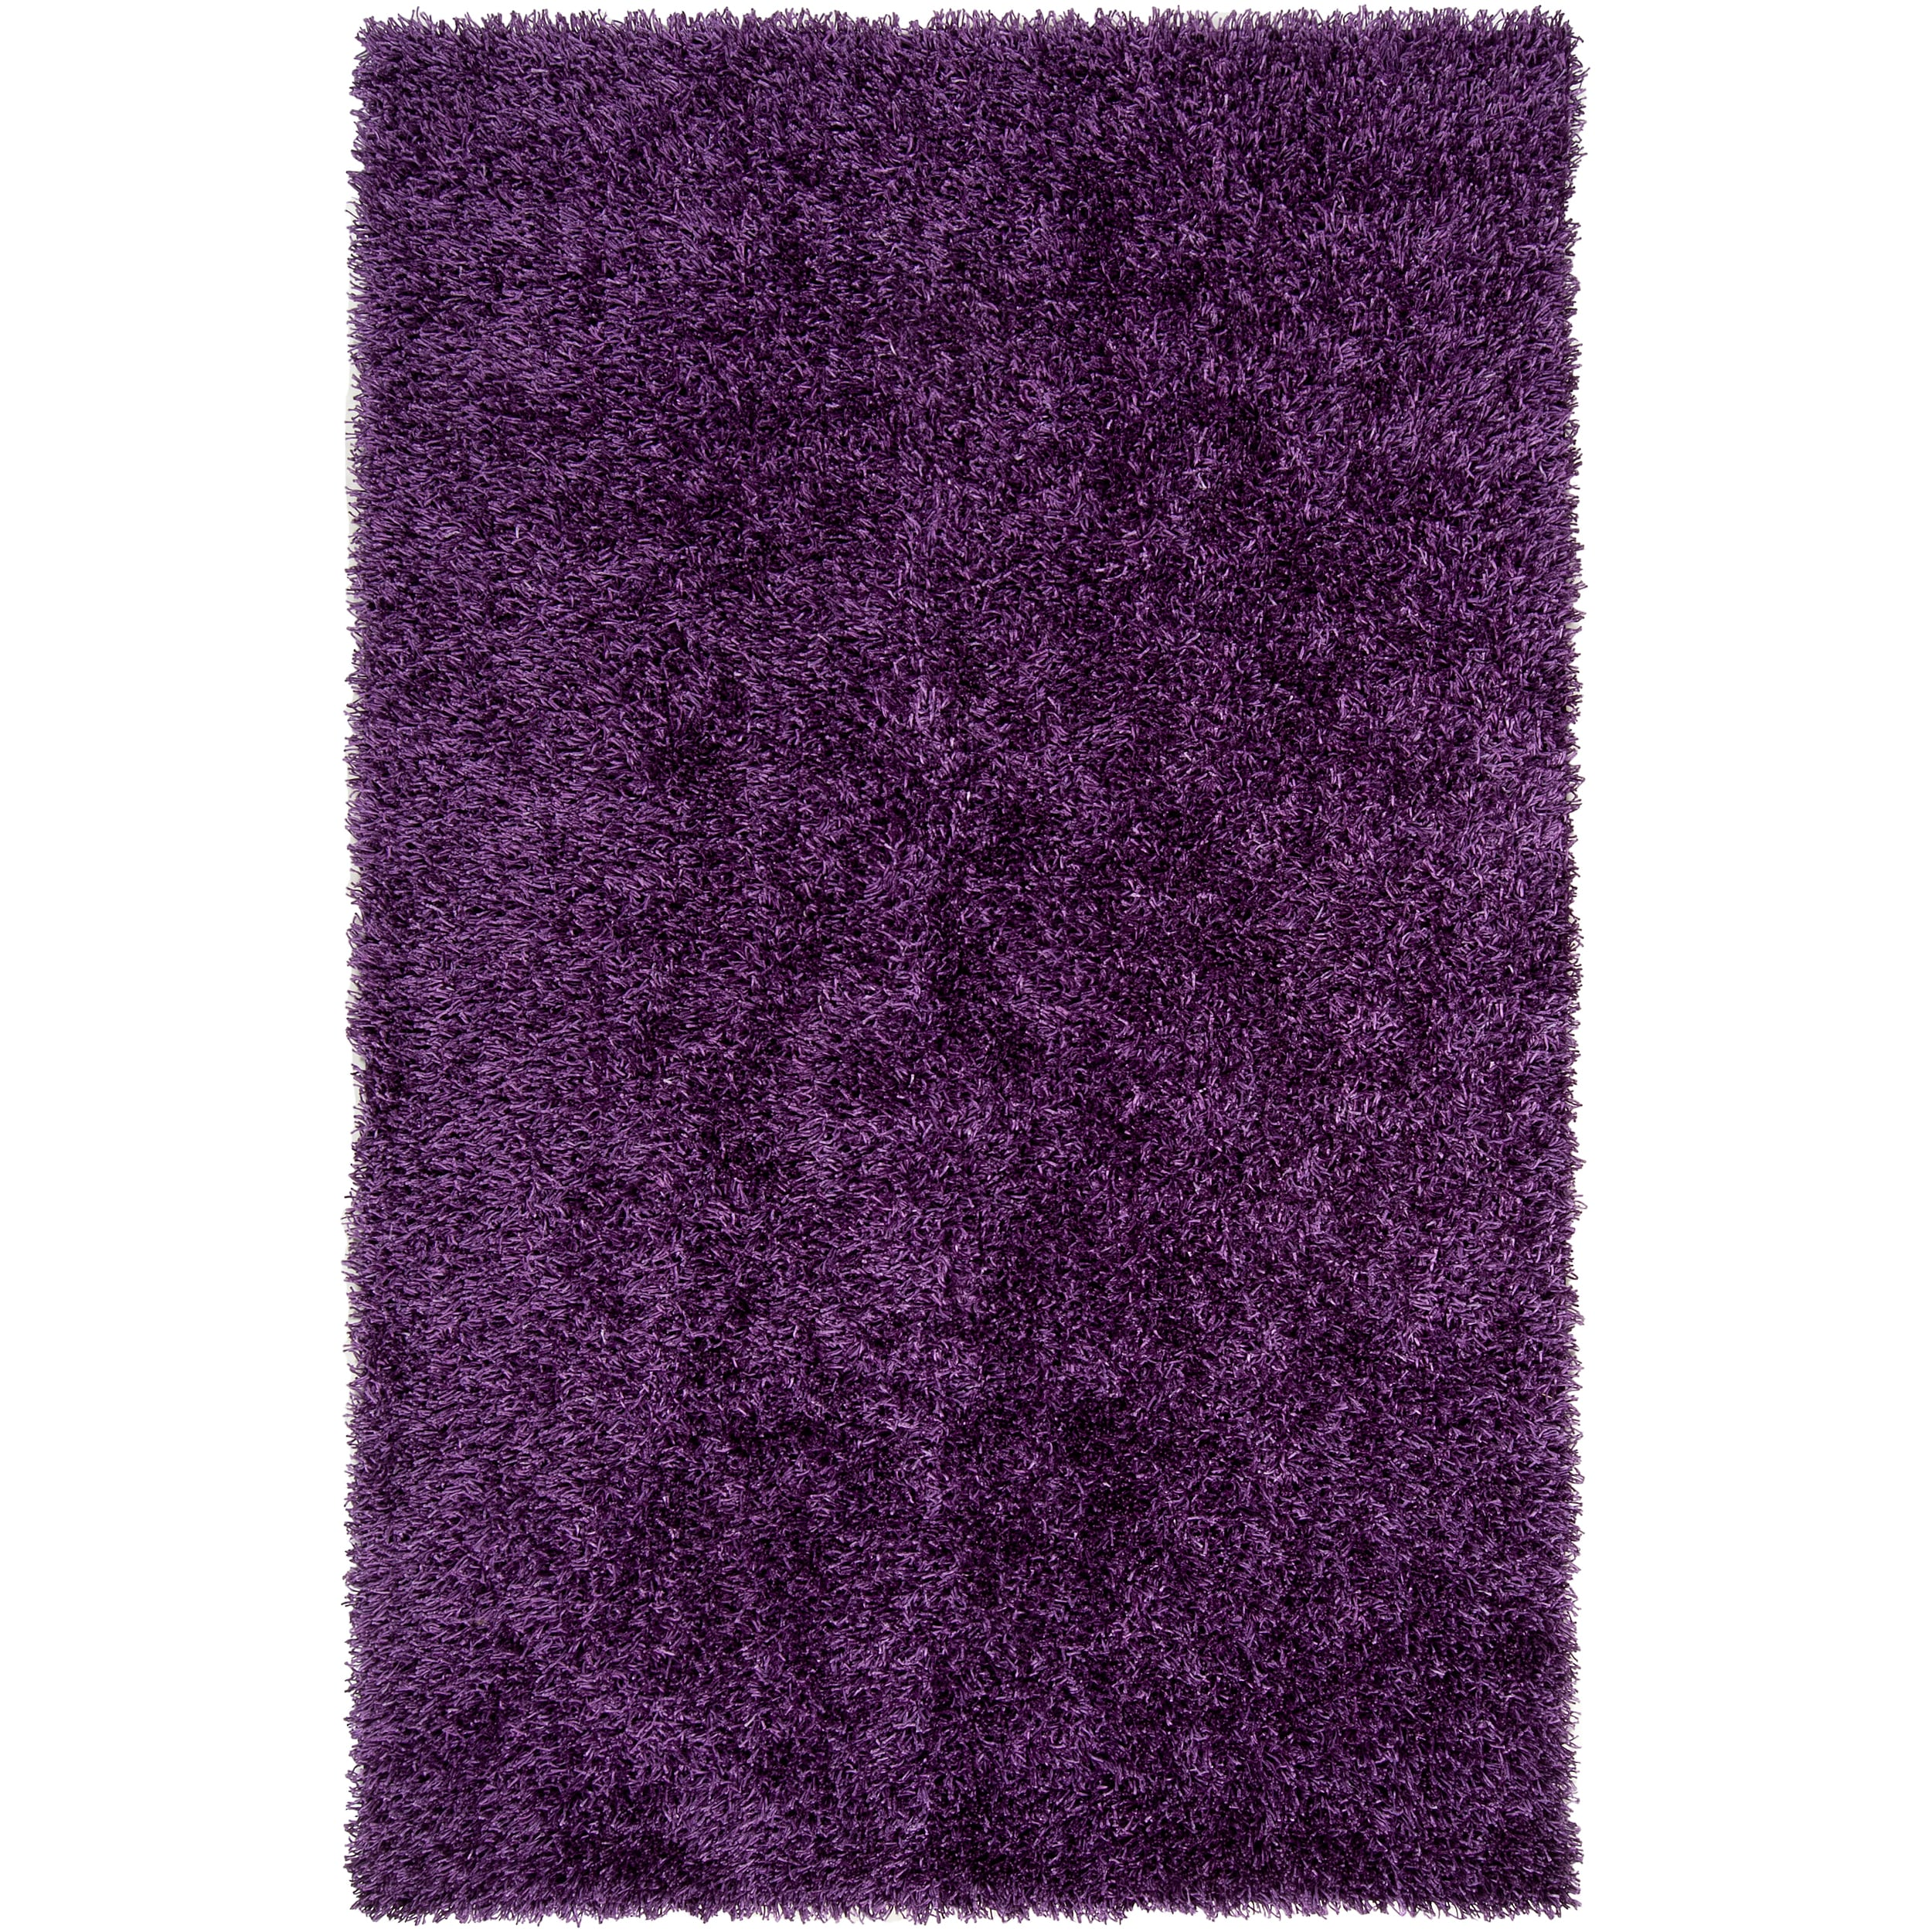 Hand-woven Purple Ferta Soft Shag Rug (5' x 8')